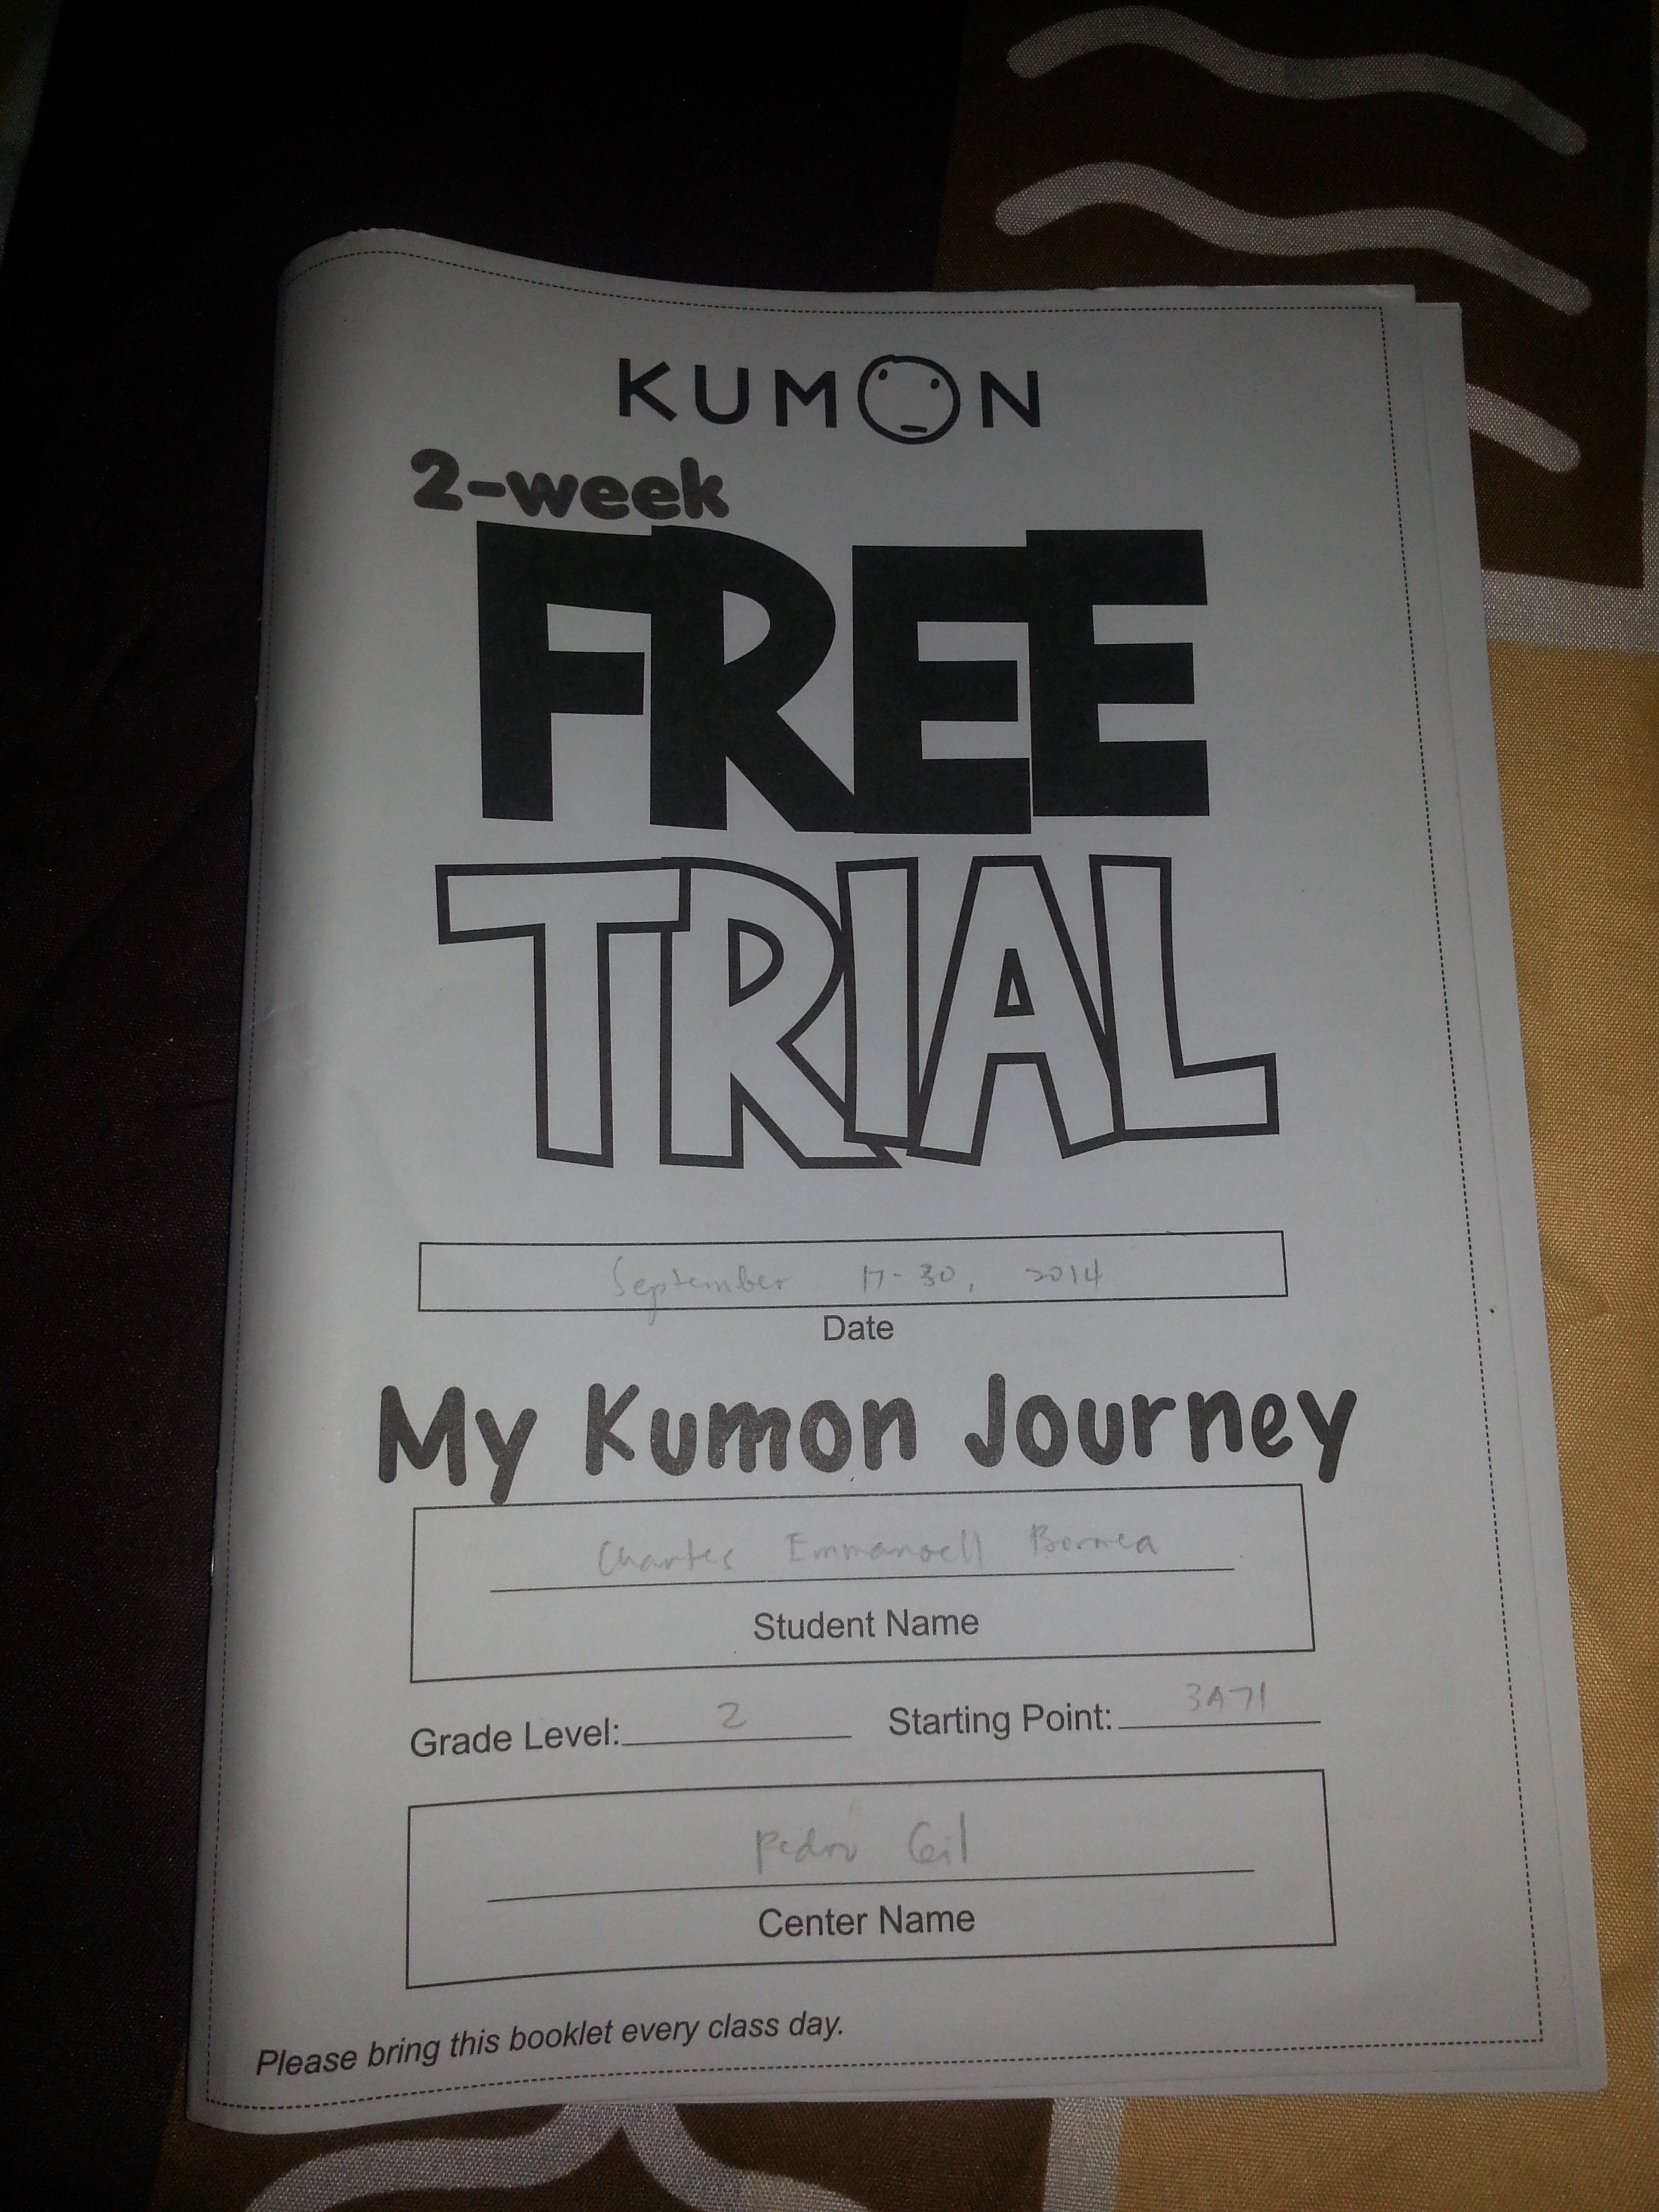 Kumon 2 Week Free Trial Life Of Aci